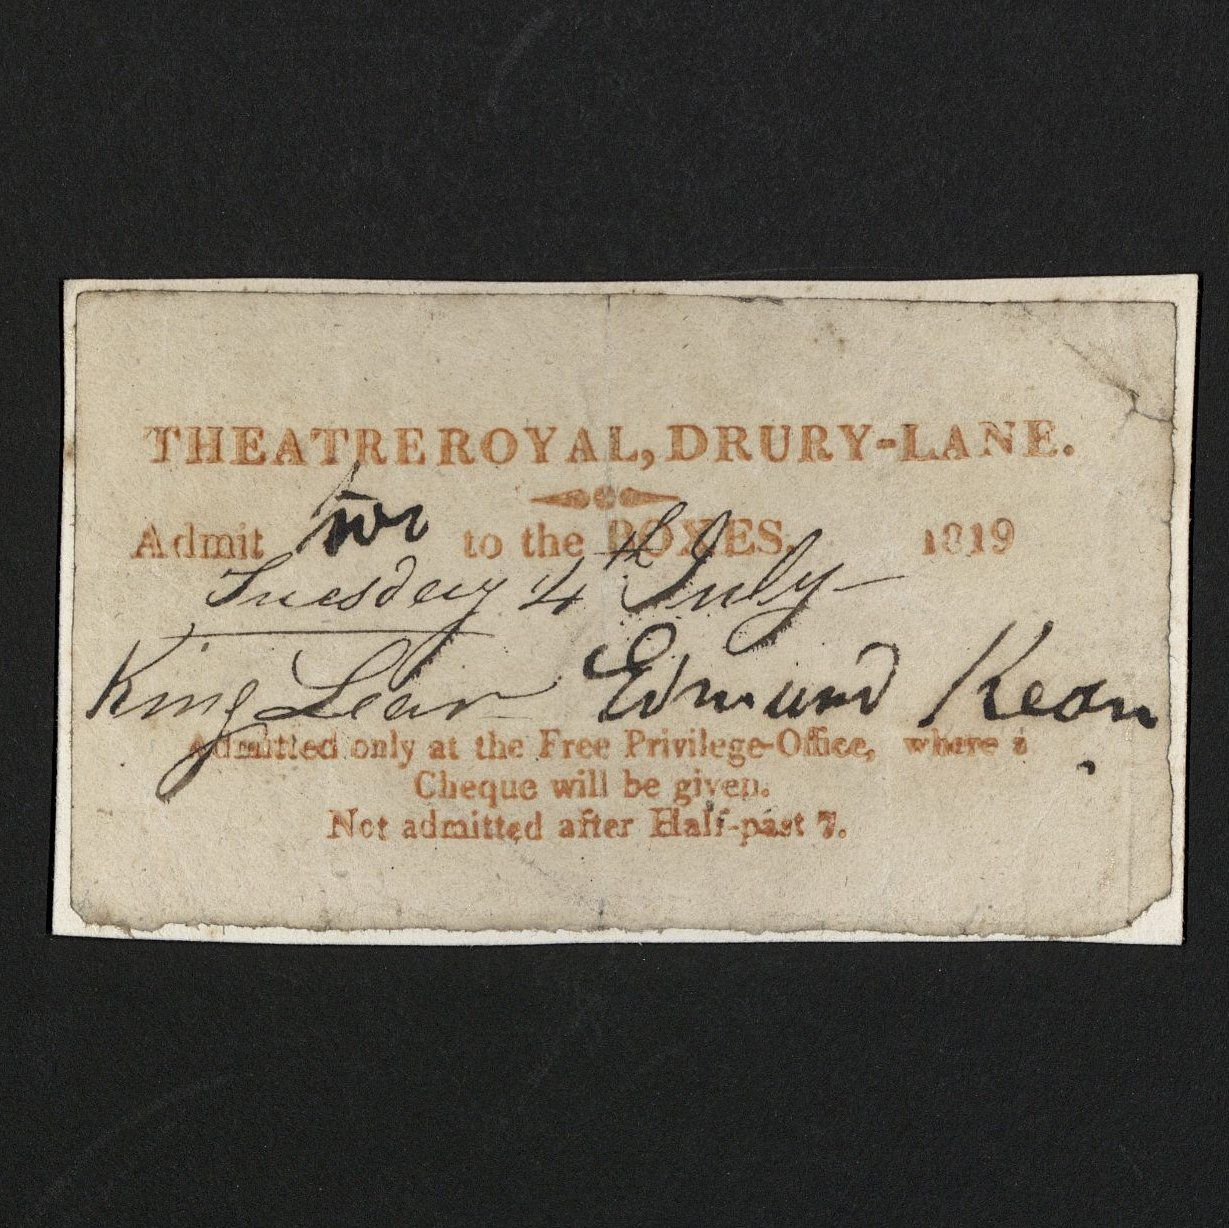 Order for Edmund Kean Performance at Drury Lane, 1819 (TS 553.801)